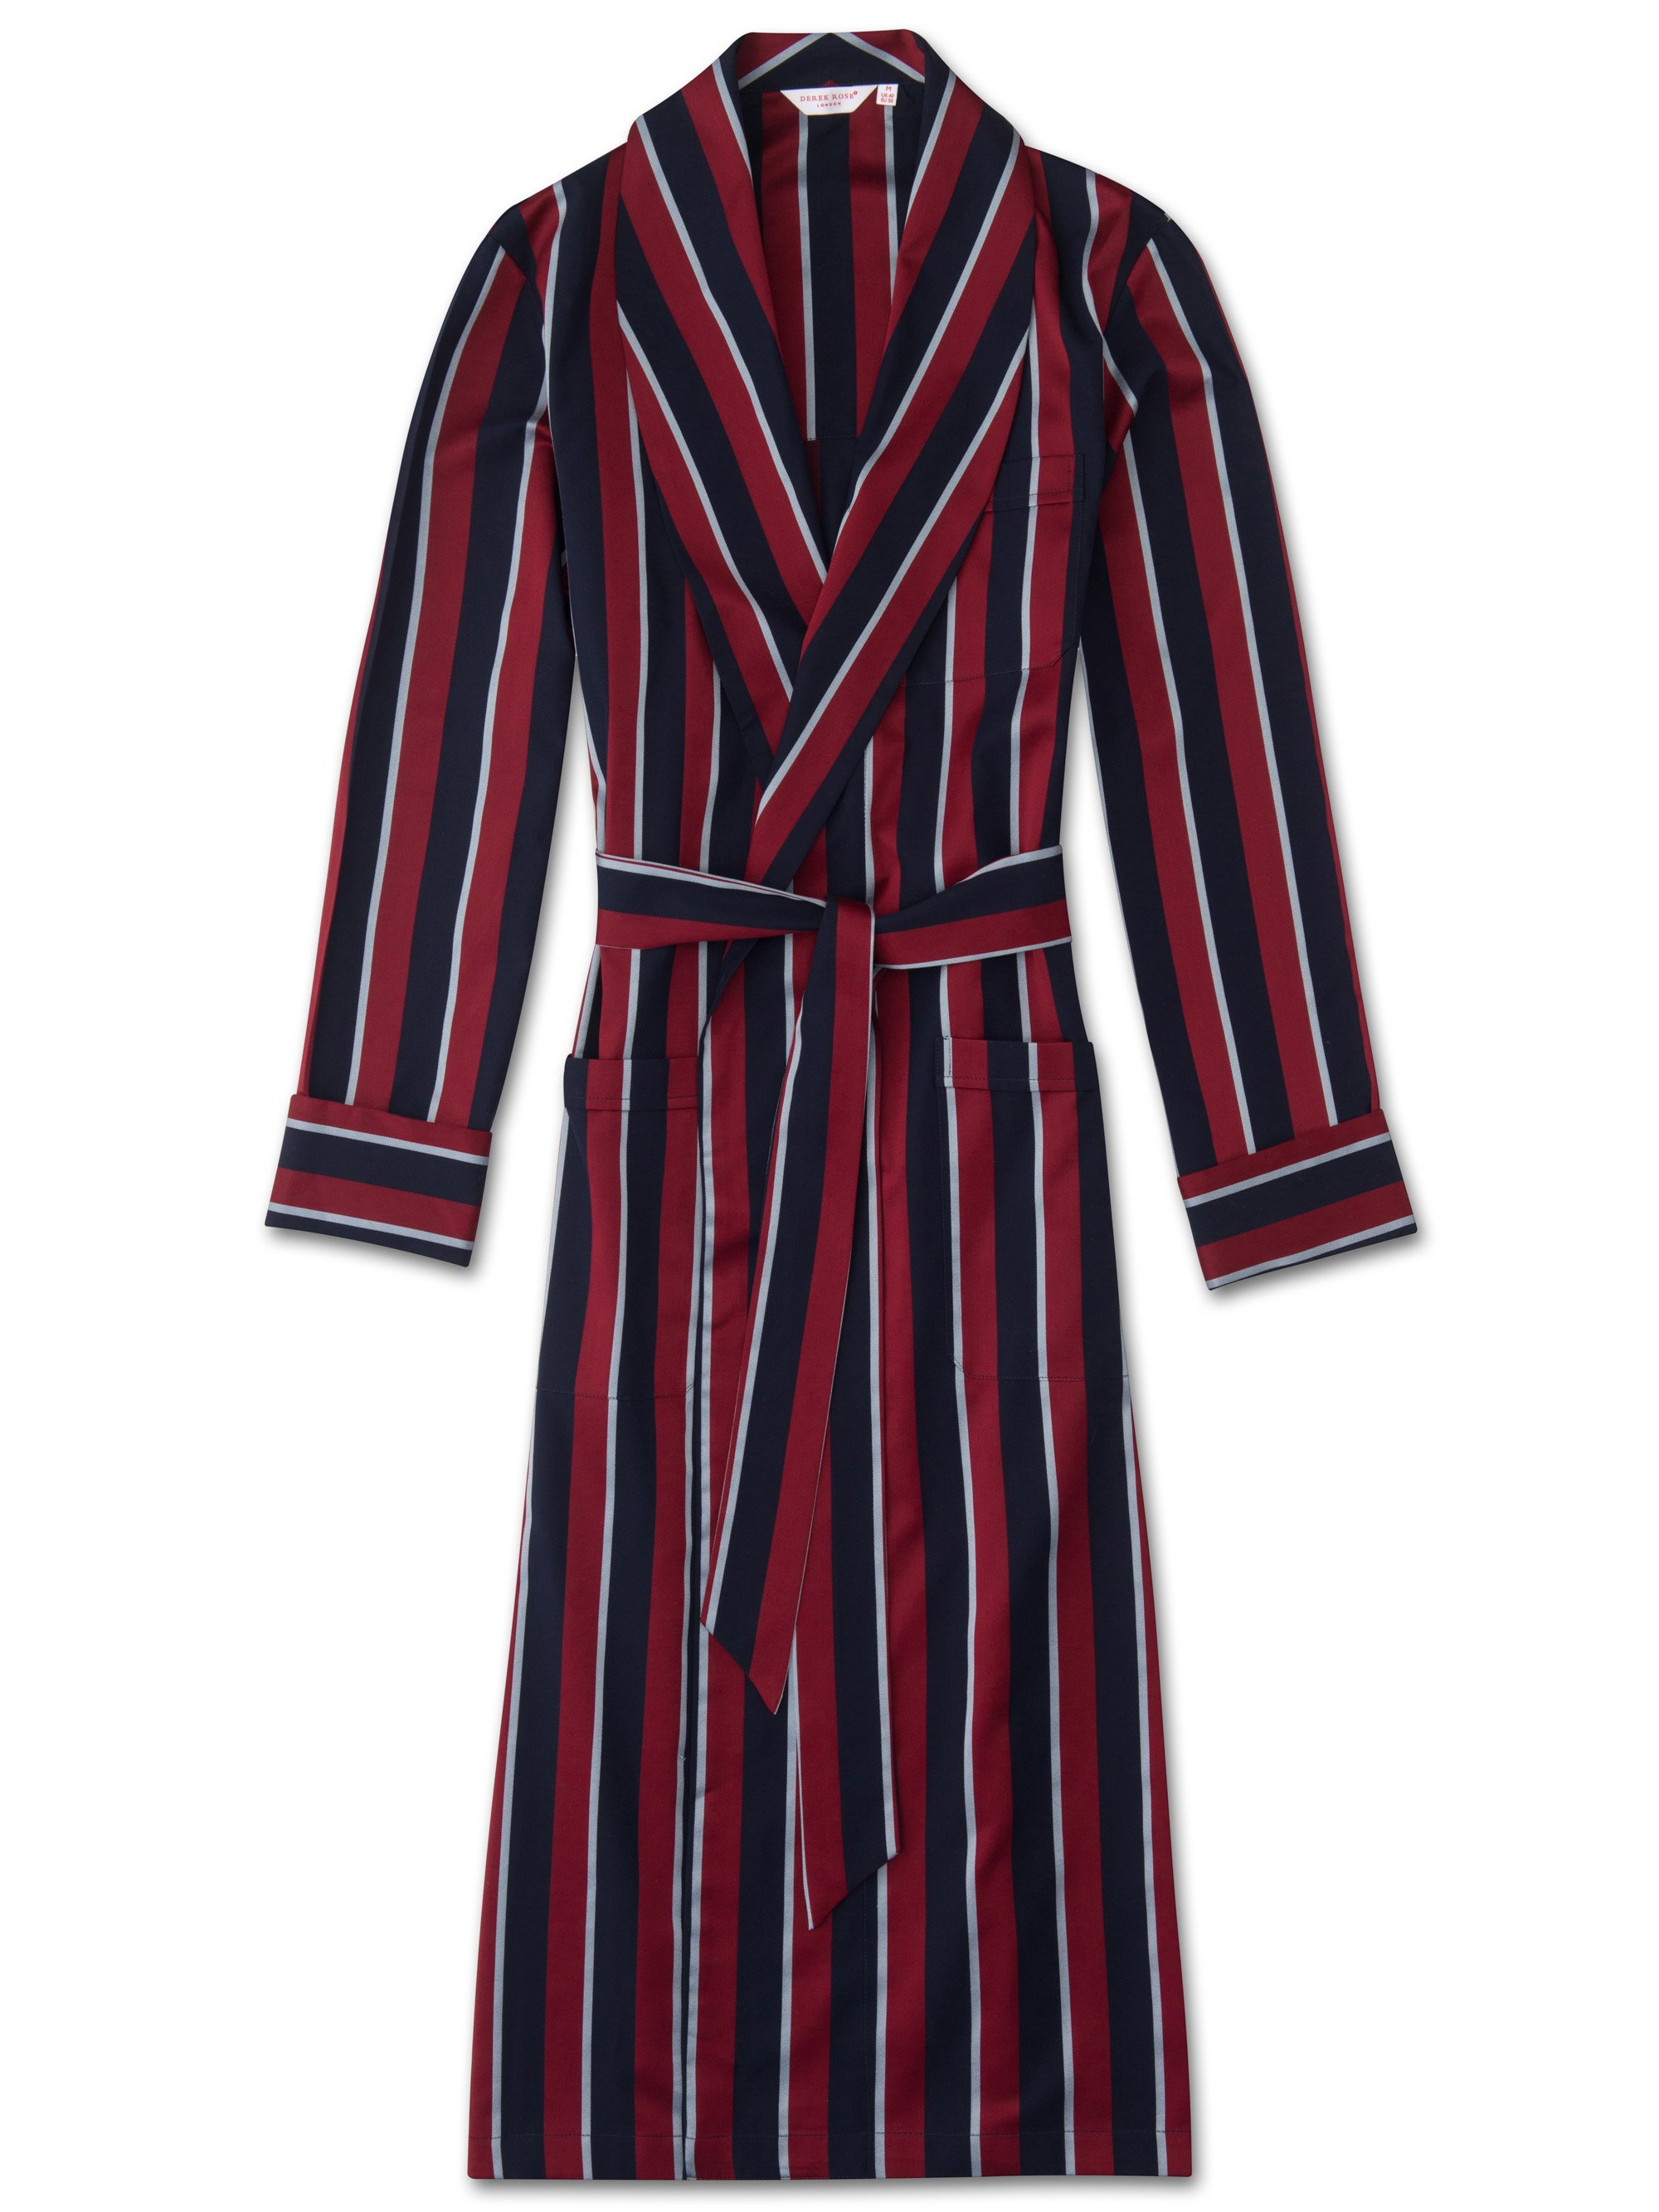 Men's Classic Dressing Gown Cotton Satin Stripe Regimental RAF